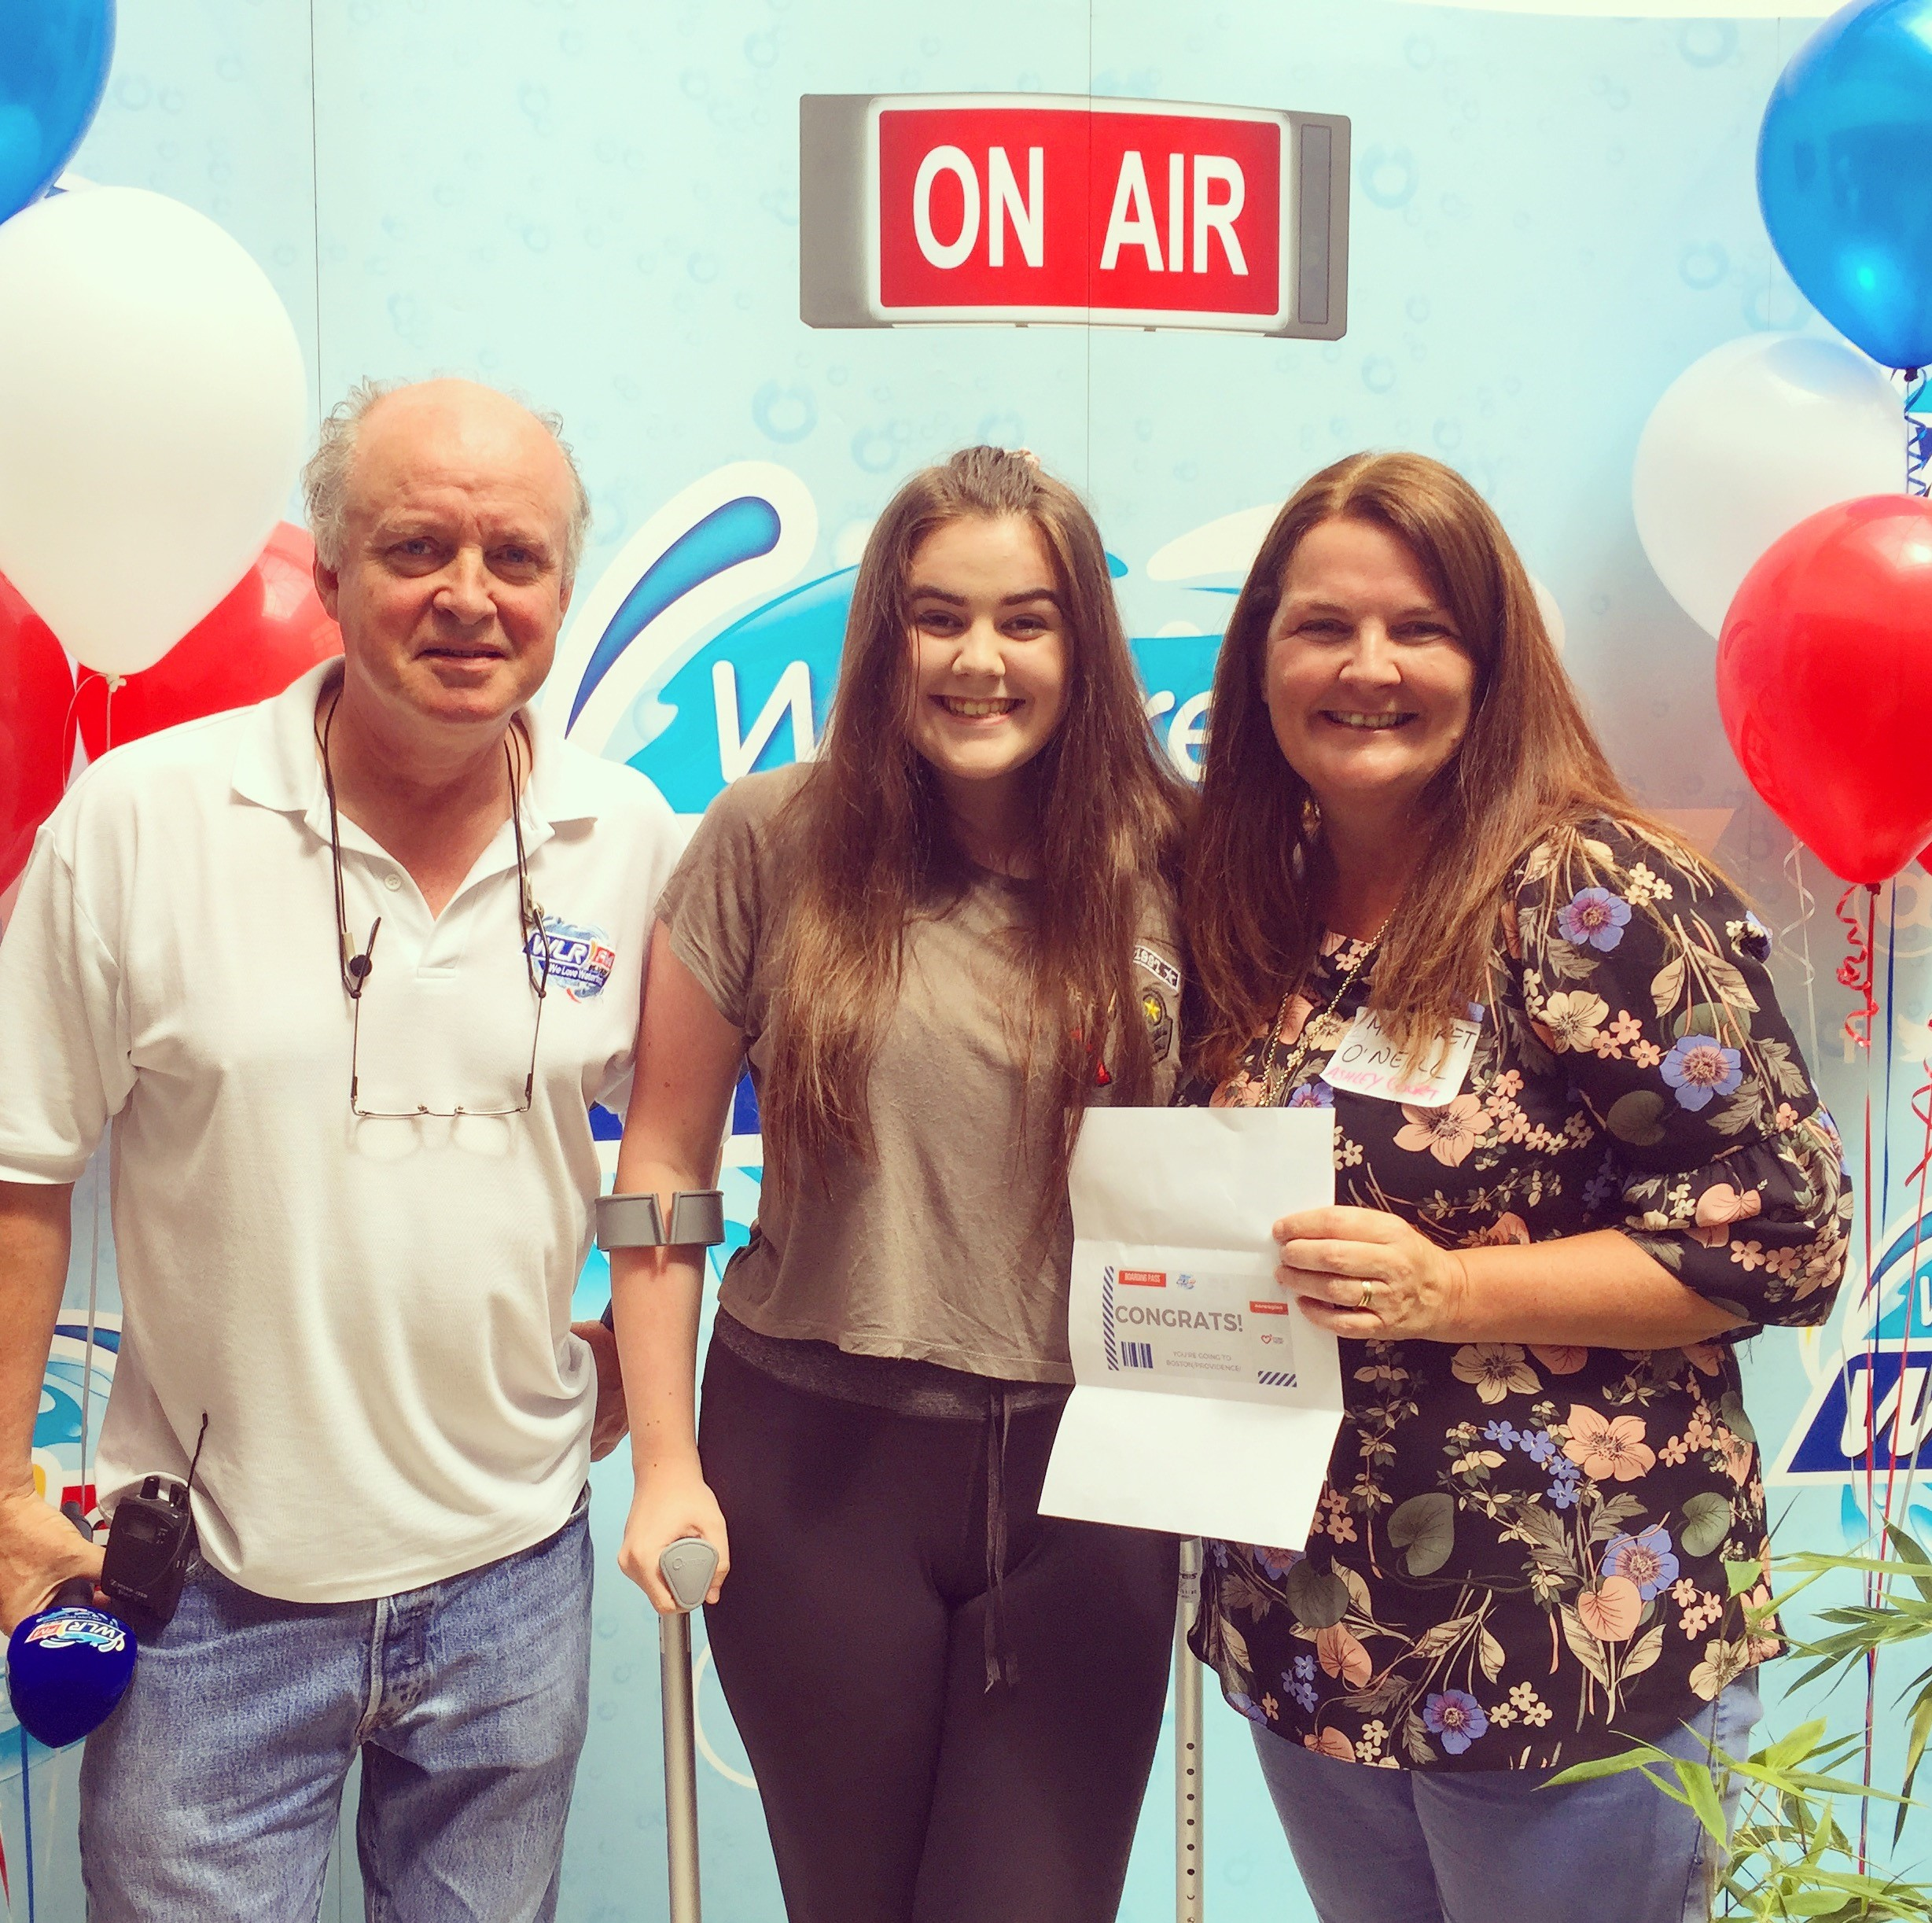 Margaret O'Neill from Waterford City wins flights to Boston/Providence on WLR